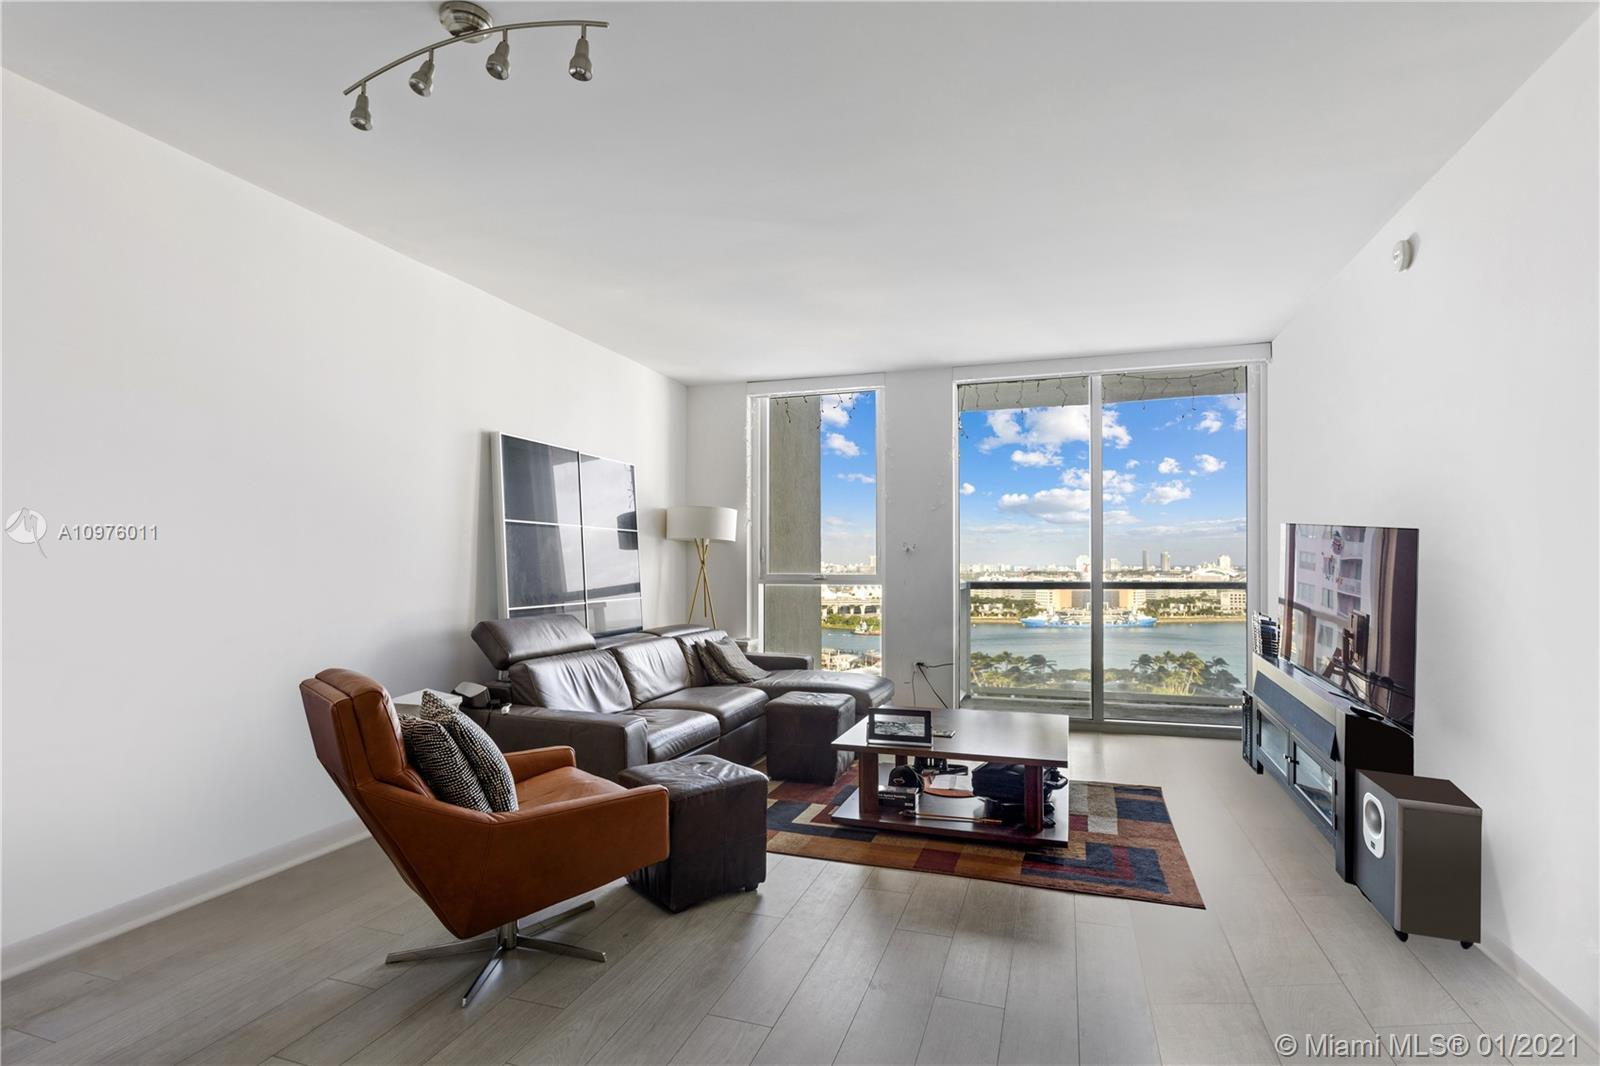 Spacious 1 bedroom with unobstructed panoramic water views. Ample master bedroom with spacious walki